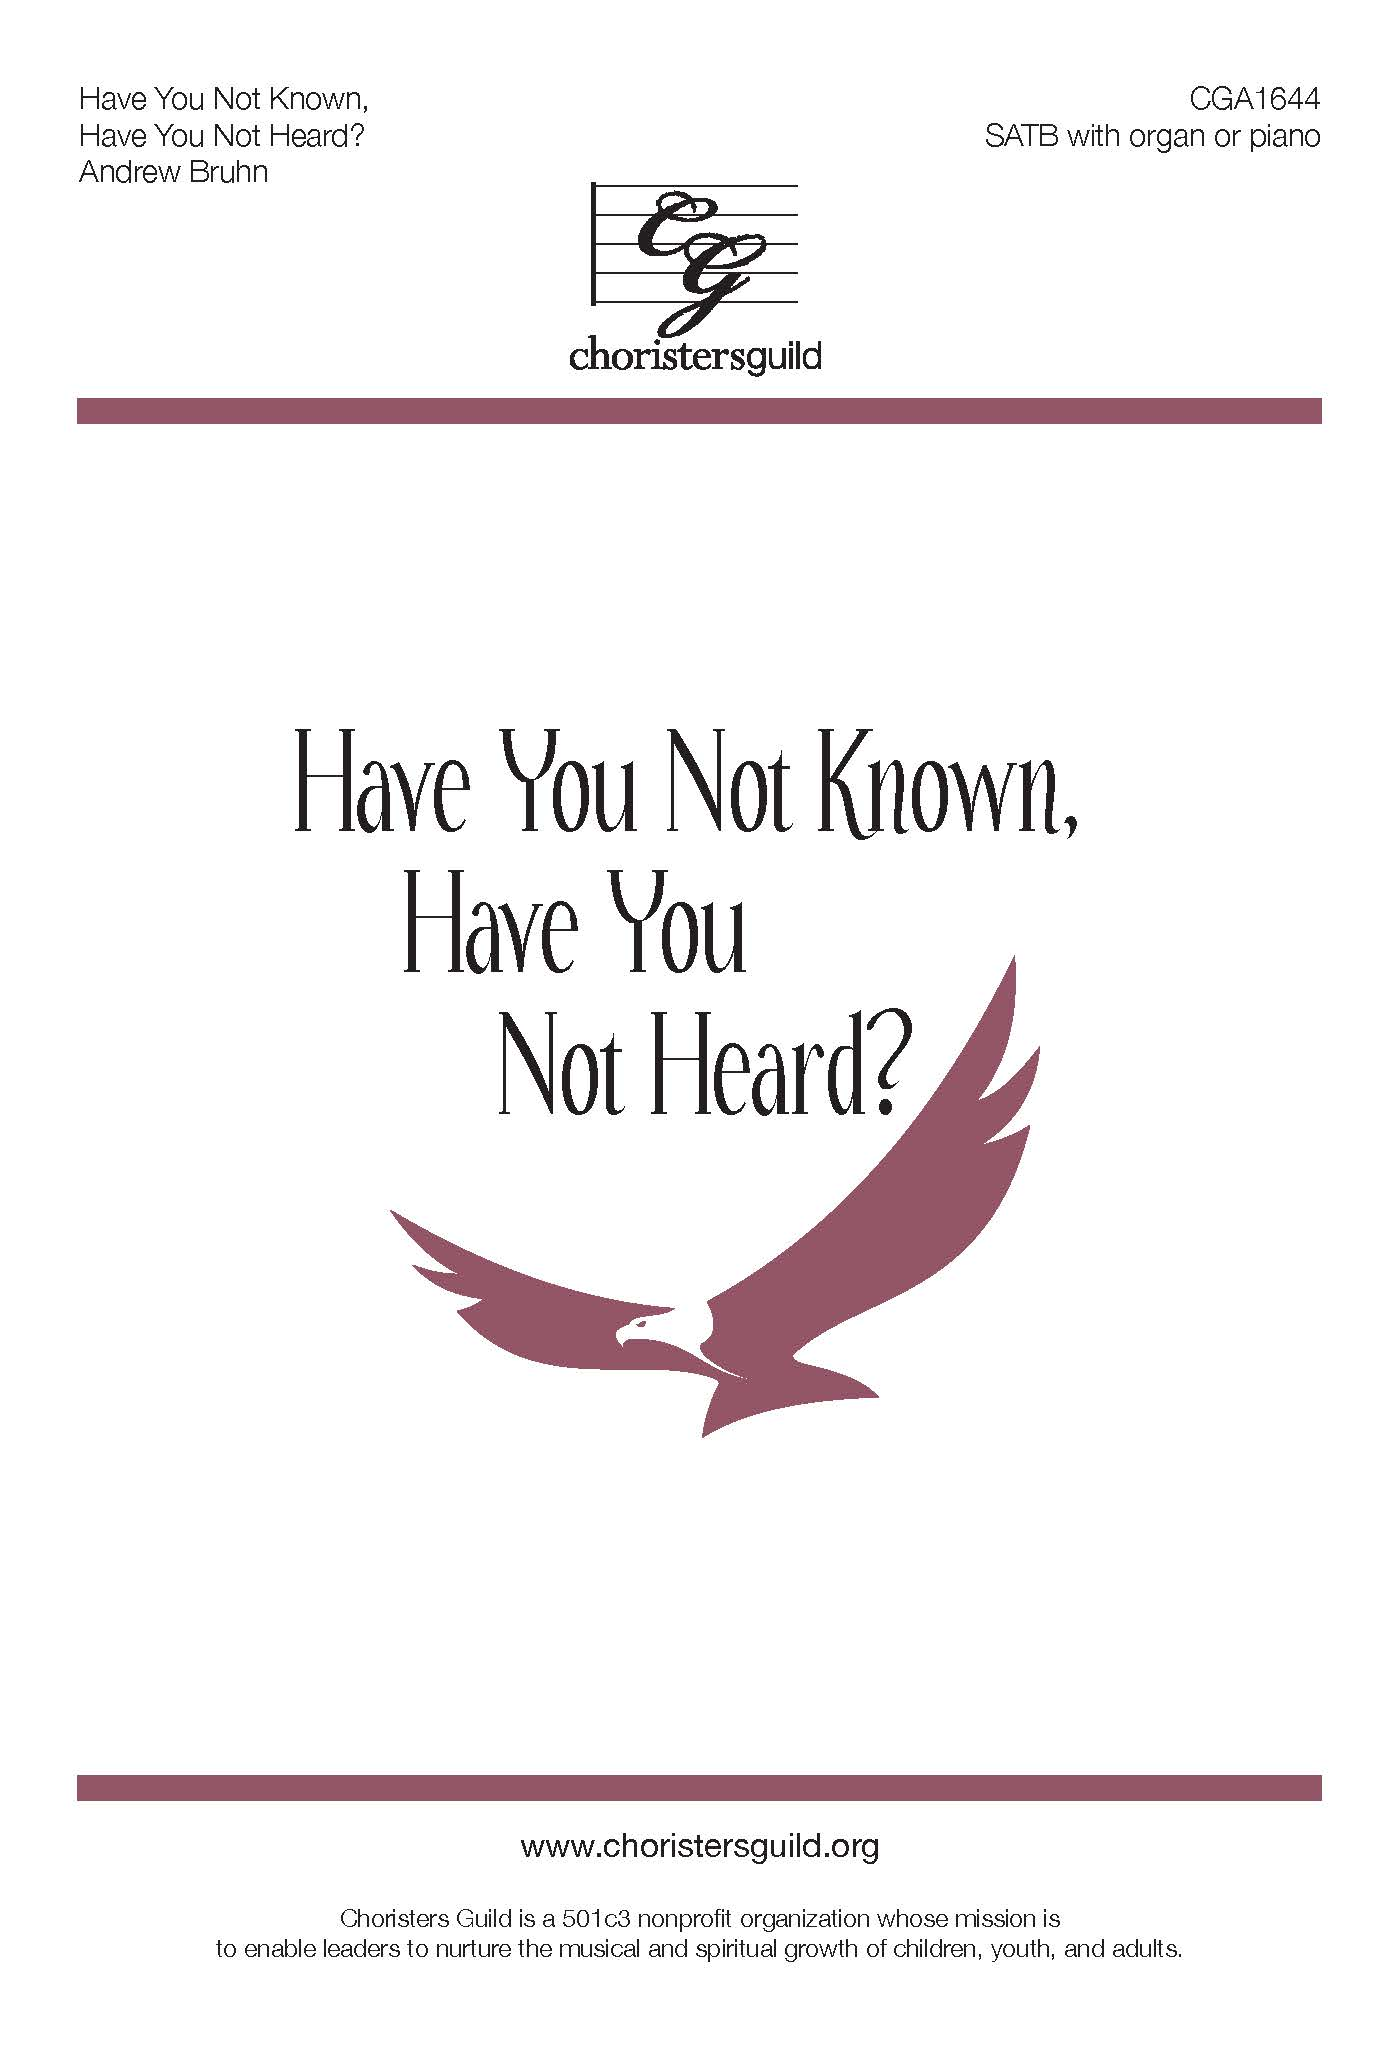 Have You Not Known, Have You Not Heard? - SATB